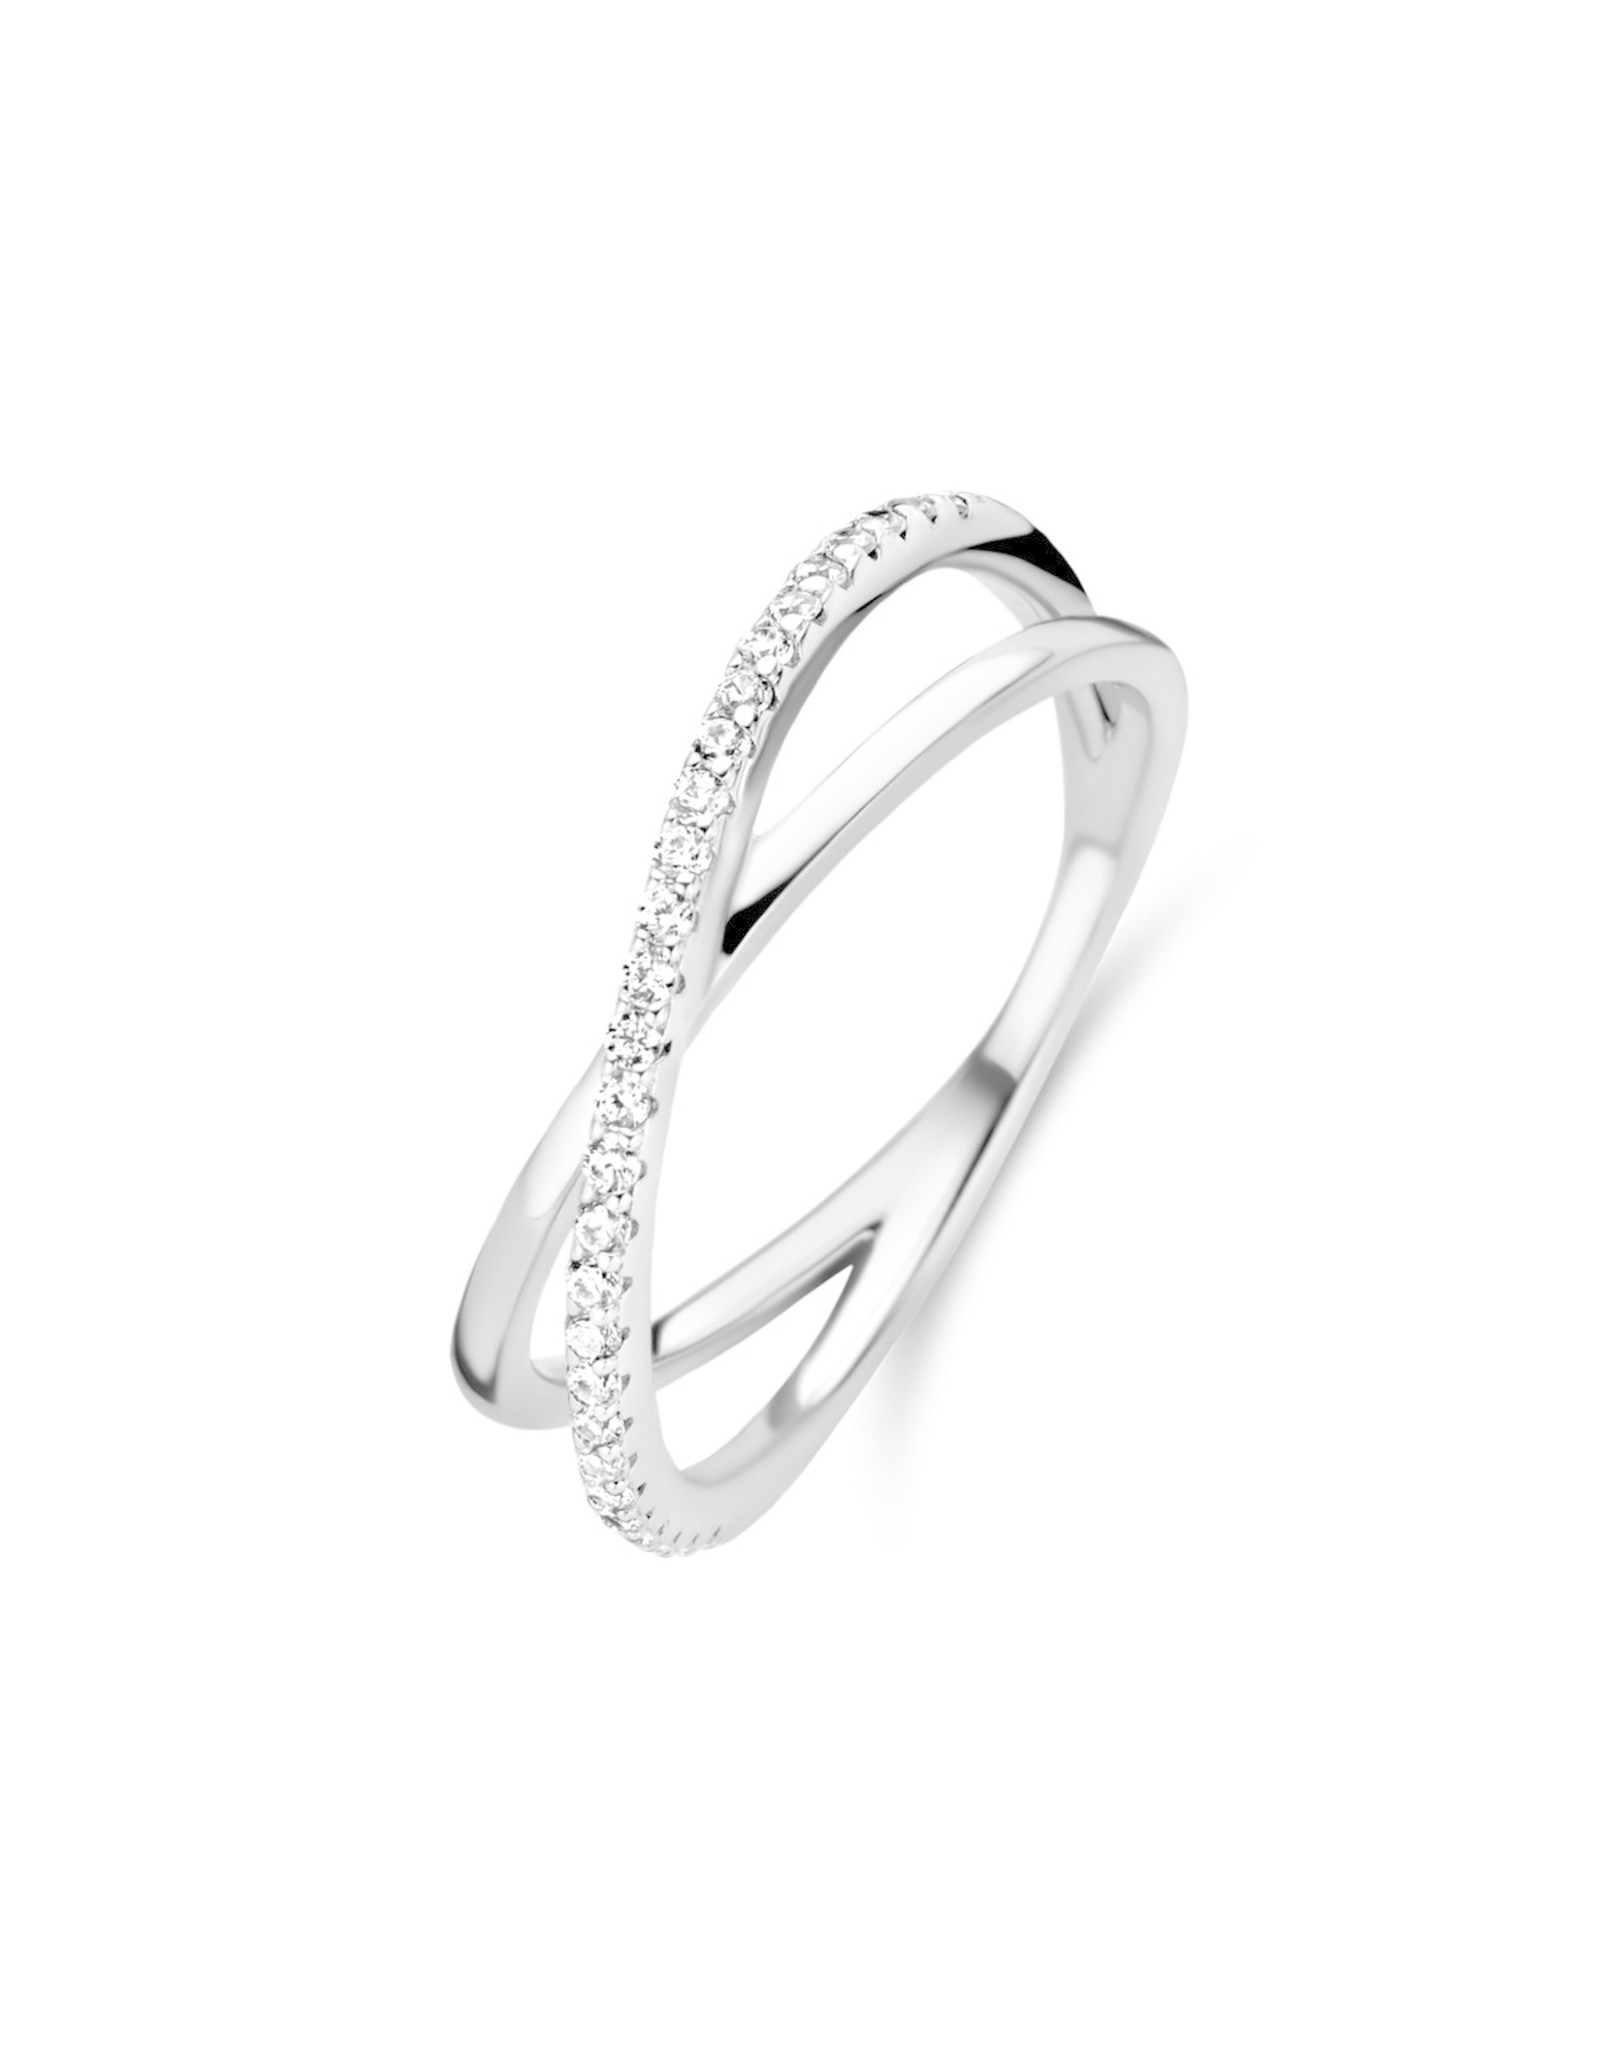 Ring Naiomy Moments B0P01 Zilver